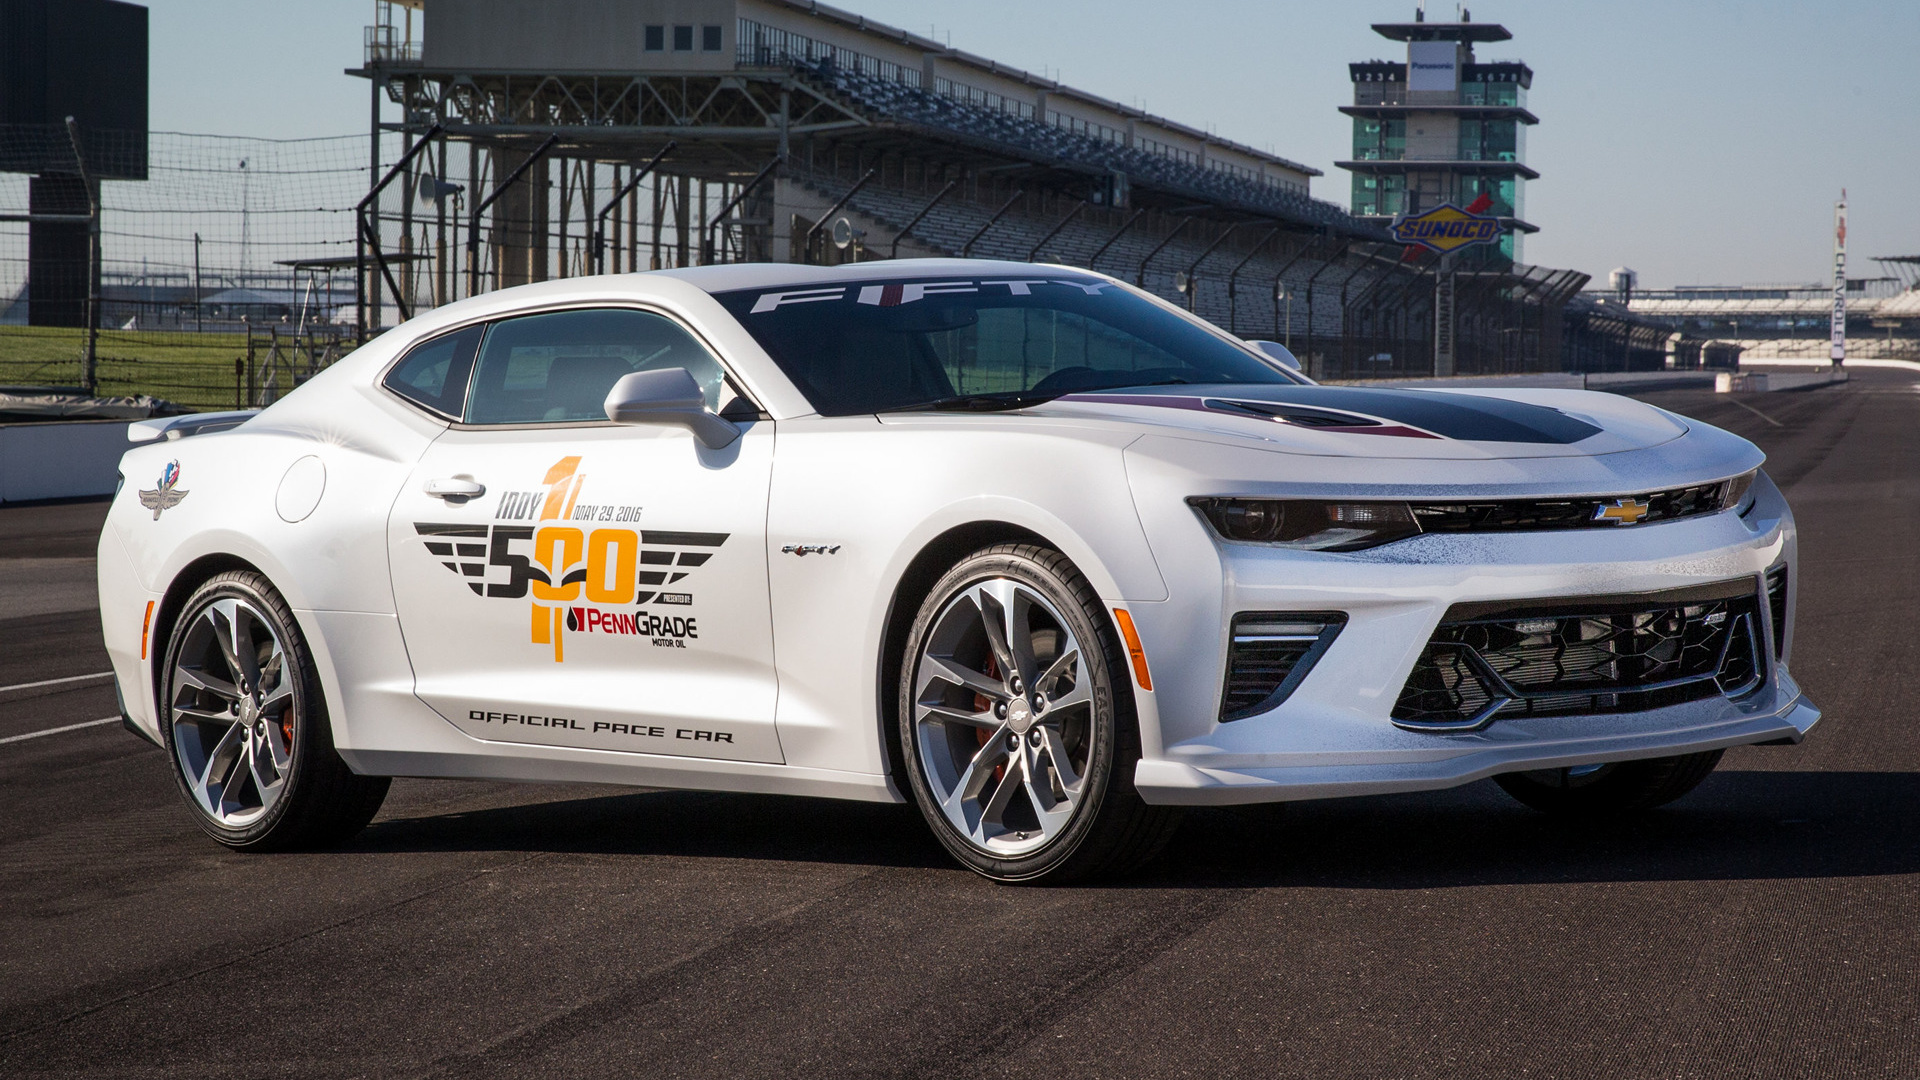 2016 Cadillac Convertible >> 2016 Chevrolet Camaro SS Indy 500 Pace Car - Wallpapers ...